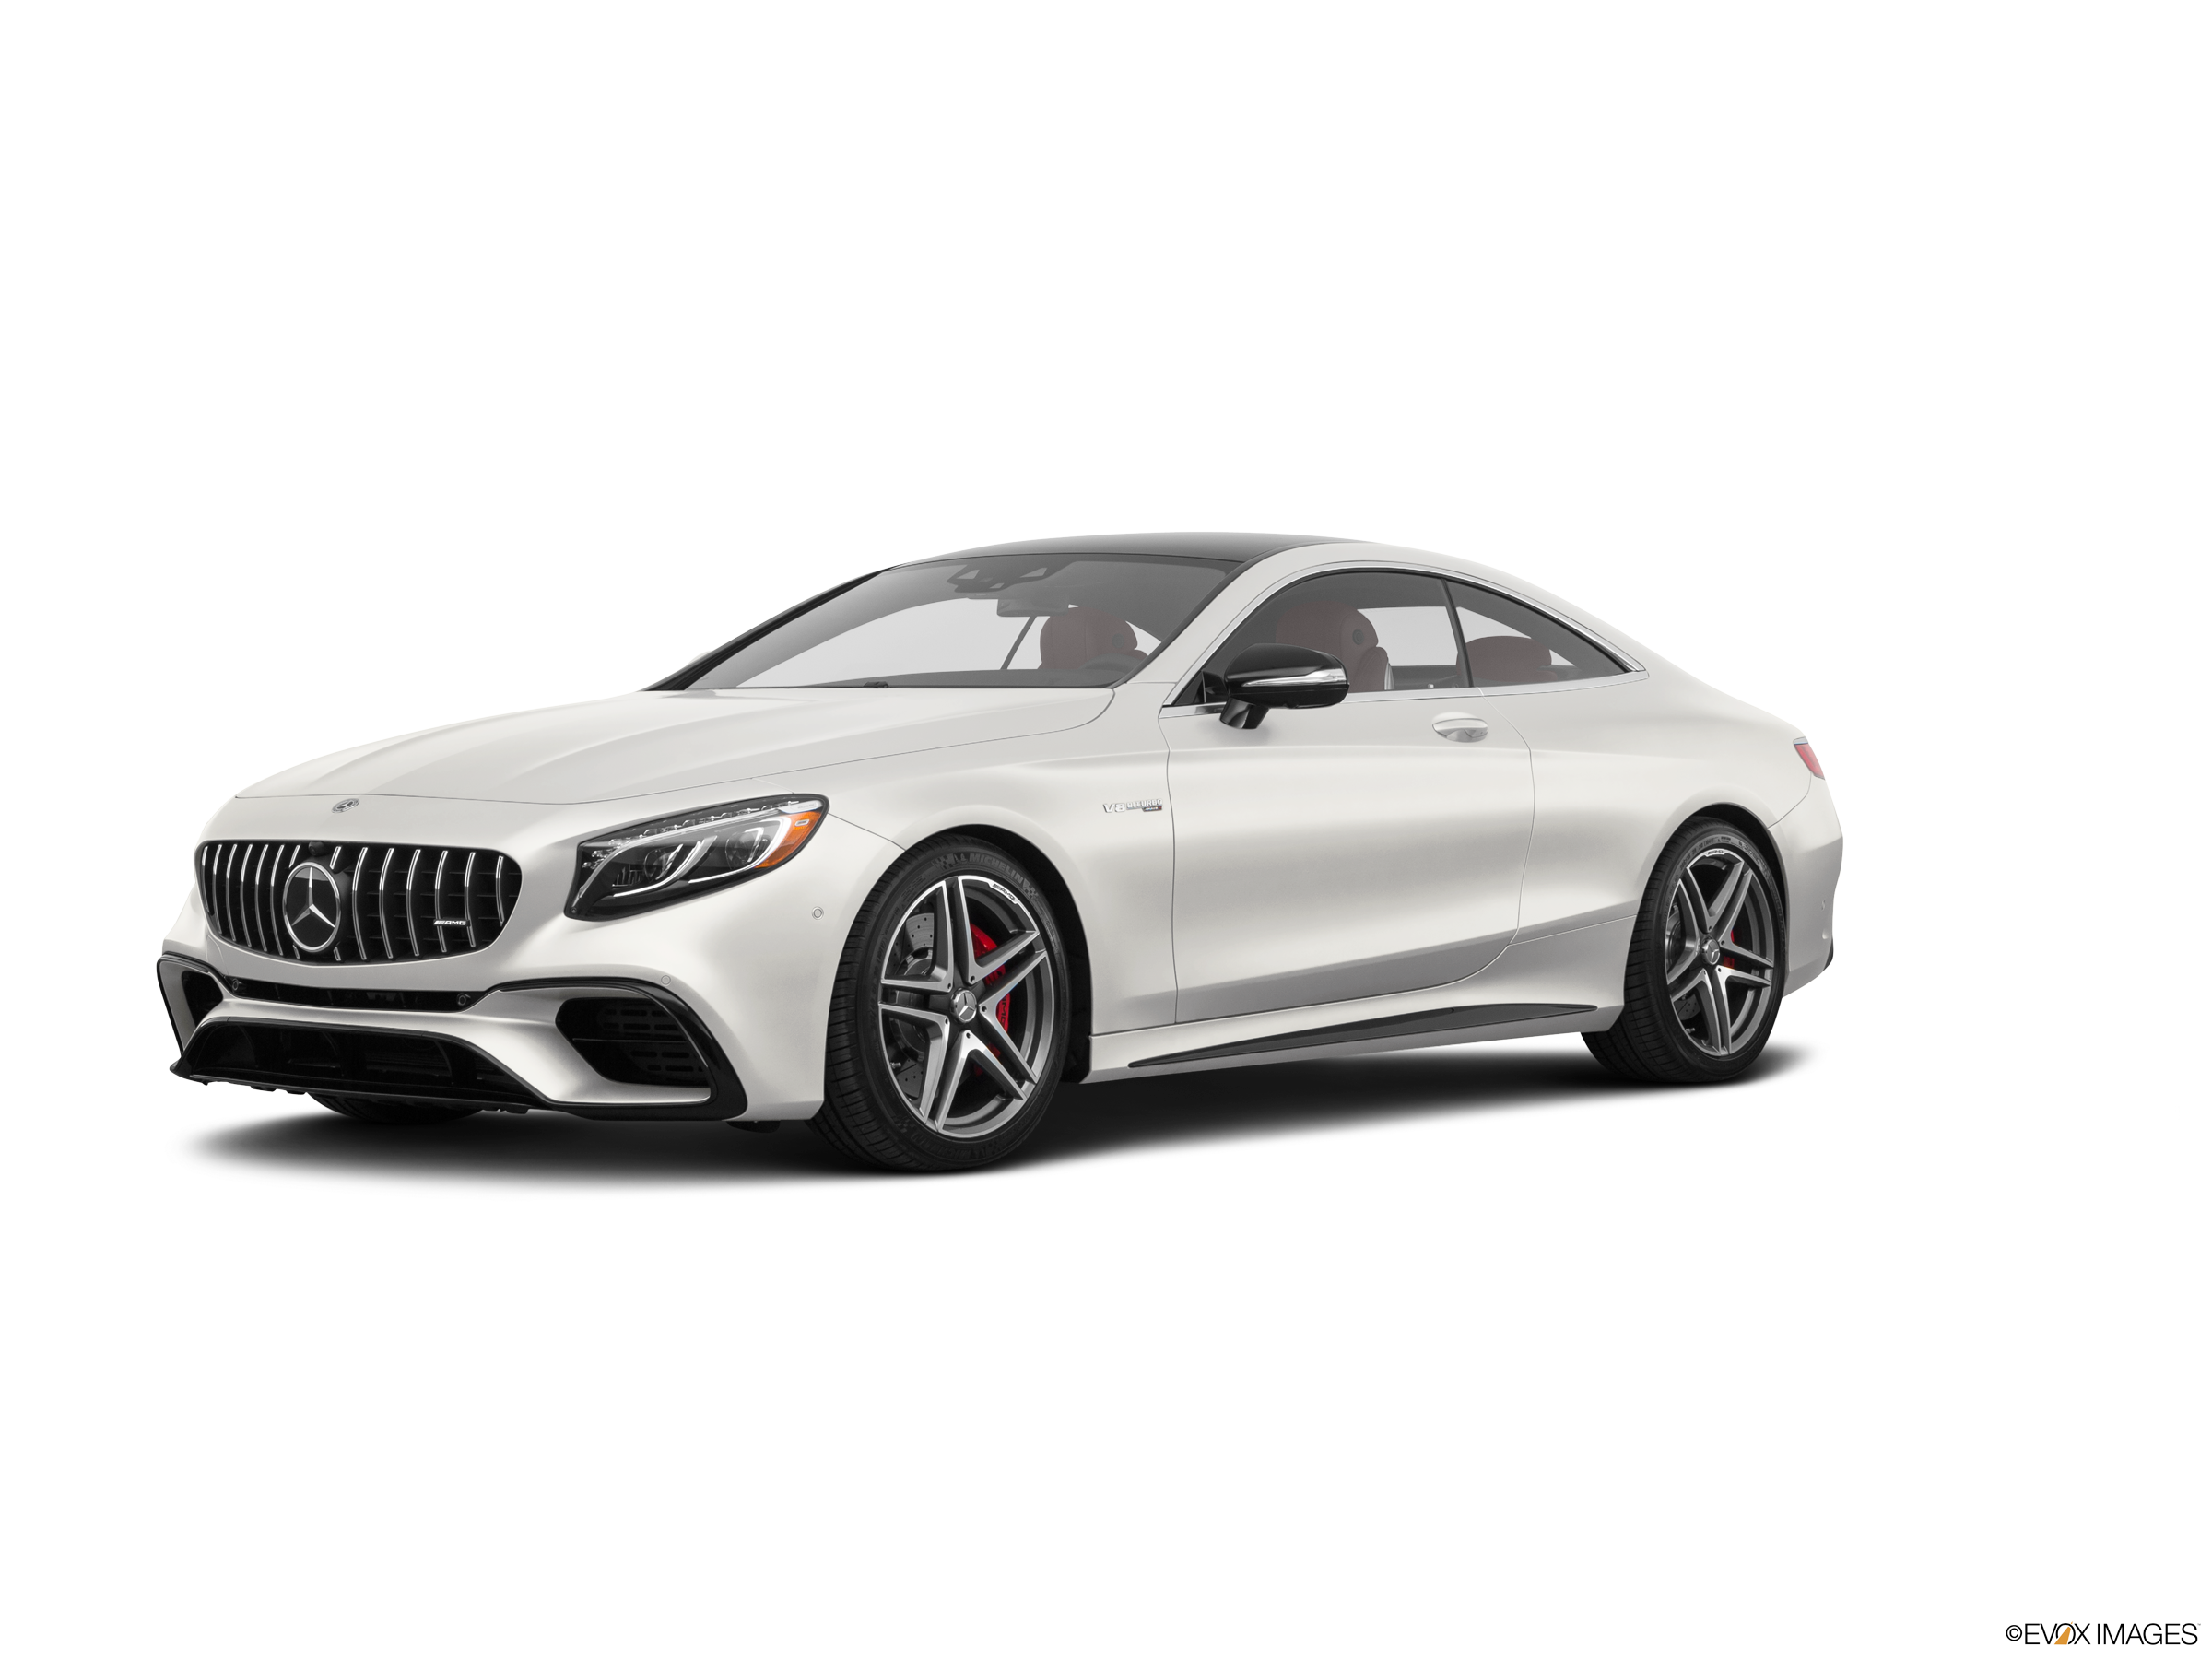 Highest Horsepower Coupes of 2019 - 2019 Mercedes-Benz Mercedes-AMG S-Class